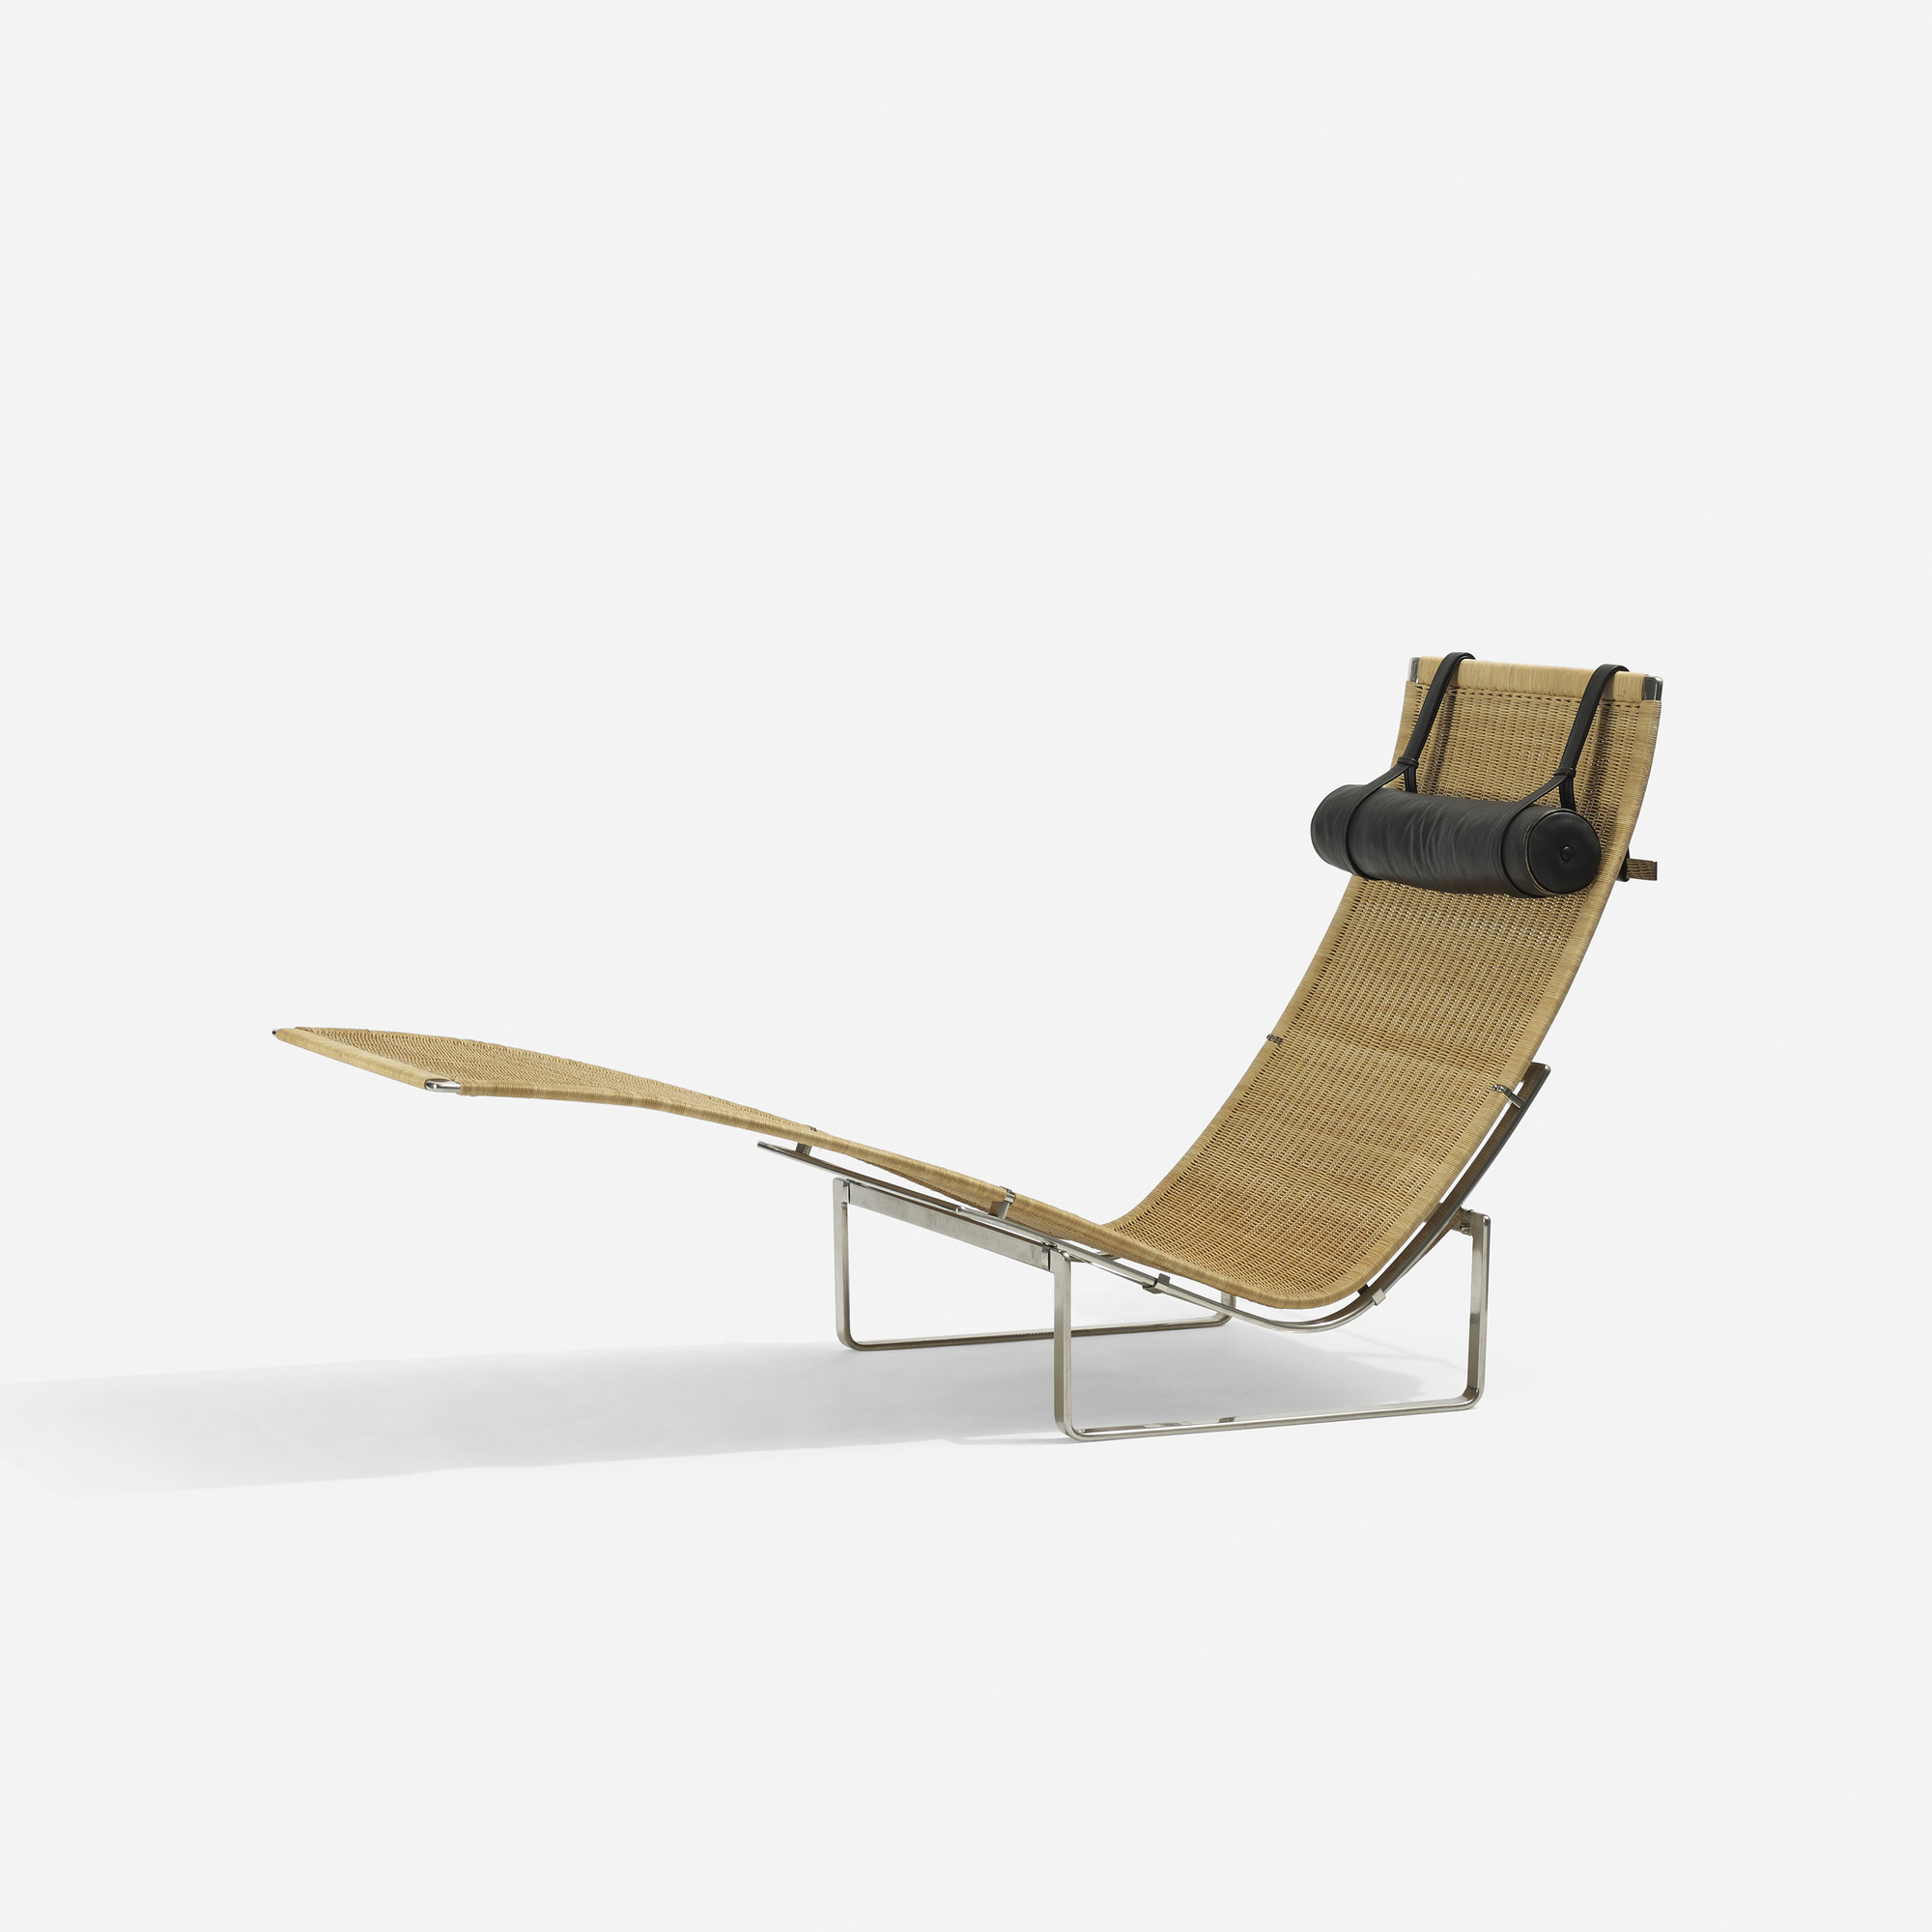 Chaise Scandinave Design Home Design Architecture